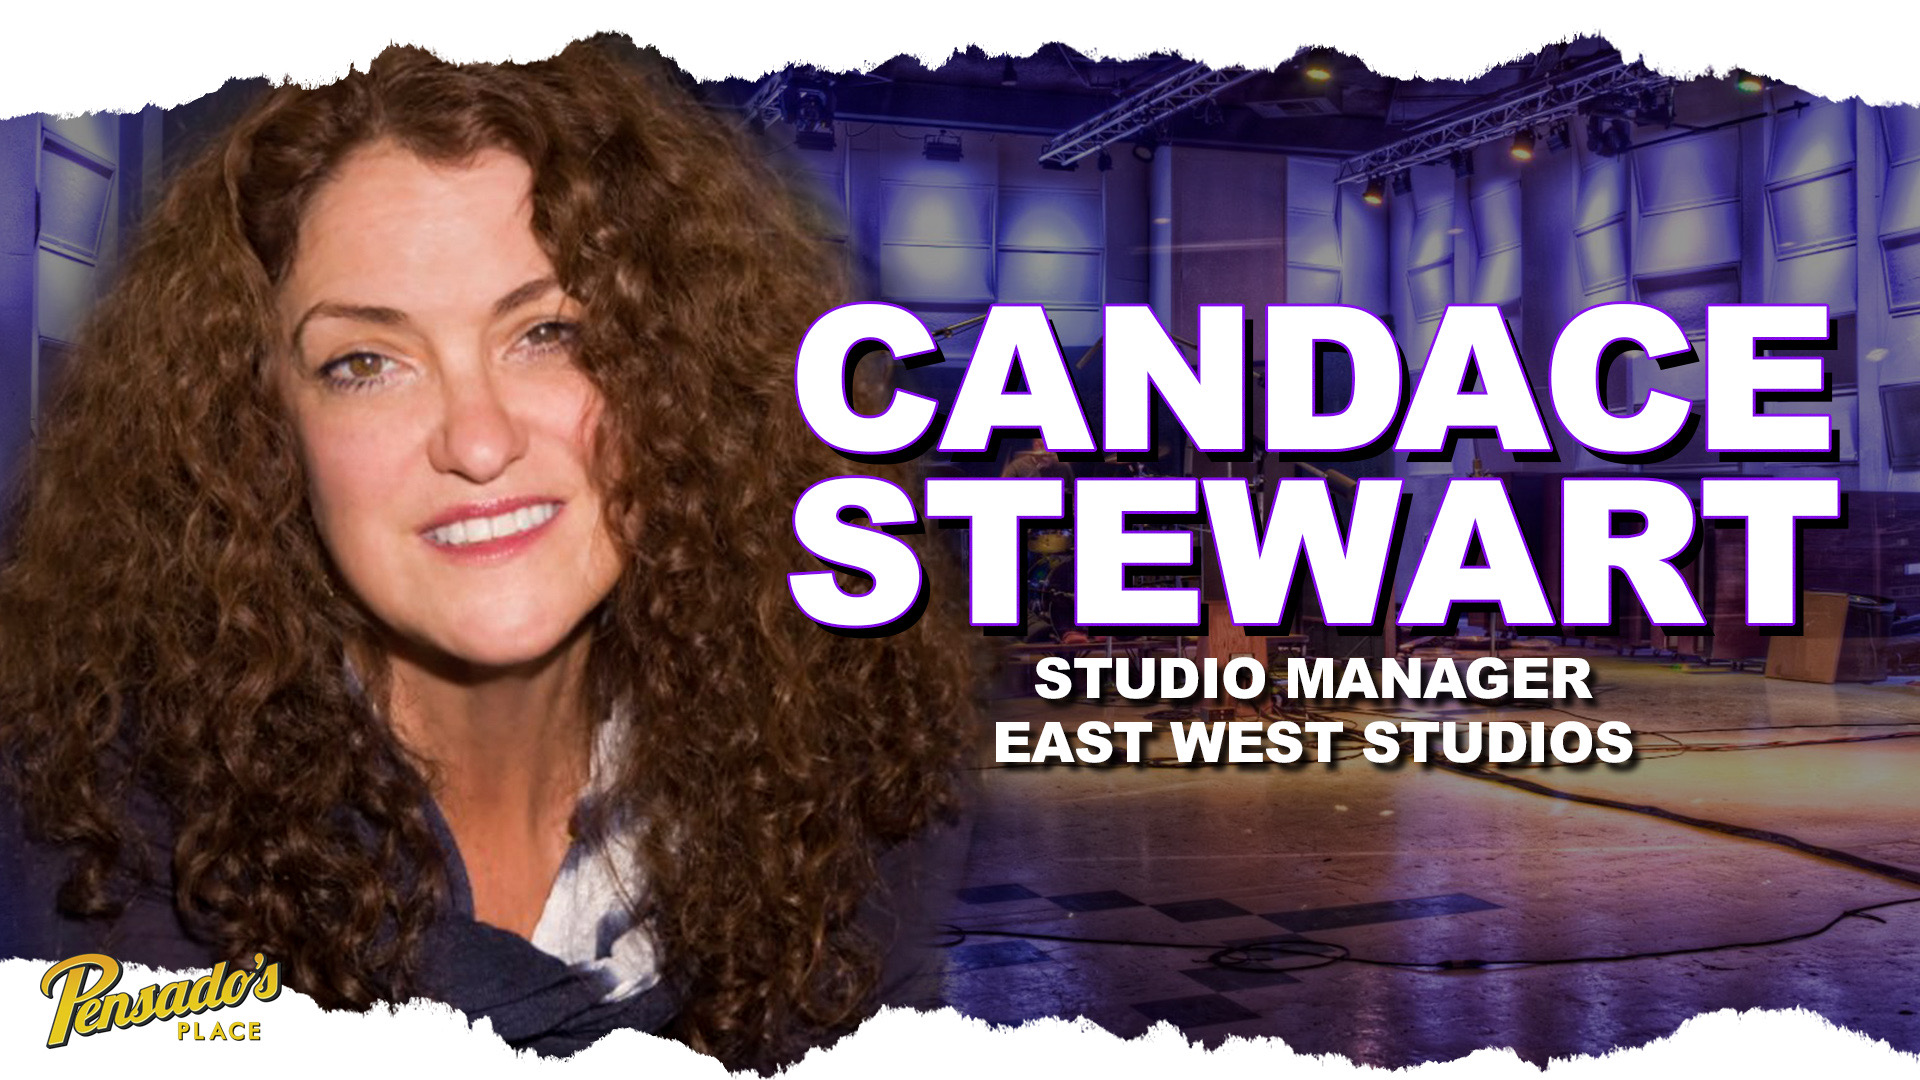 East West Studio Manager, Candace Stewart